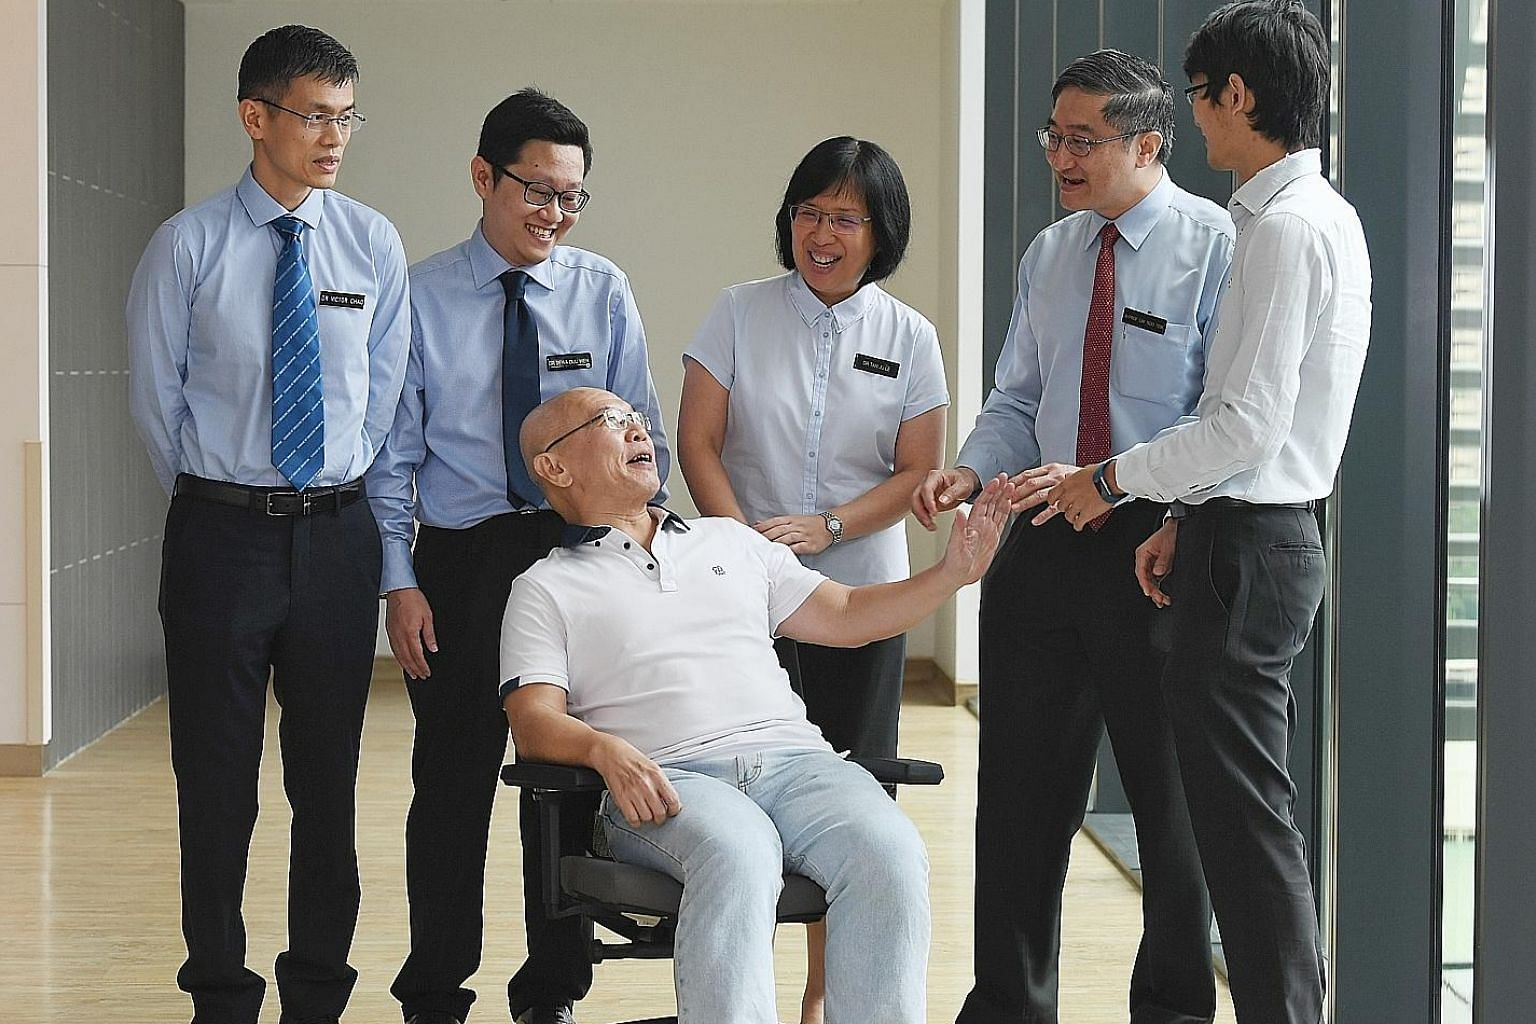 Mr Ong Chee Fatt with the team of doctors involved in his treatment and procedures (from left) Asst Professor Victor Chao, senior consultant, Department of Cardiothoracic Surgery (NHCS); Dr Sewa Duu Wen, consultant, Department of Respiratory & Critic